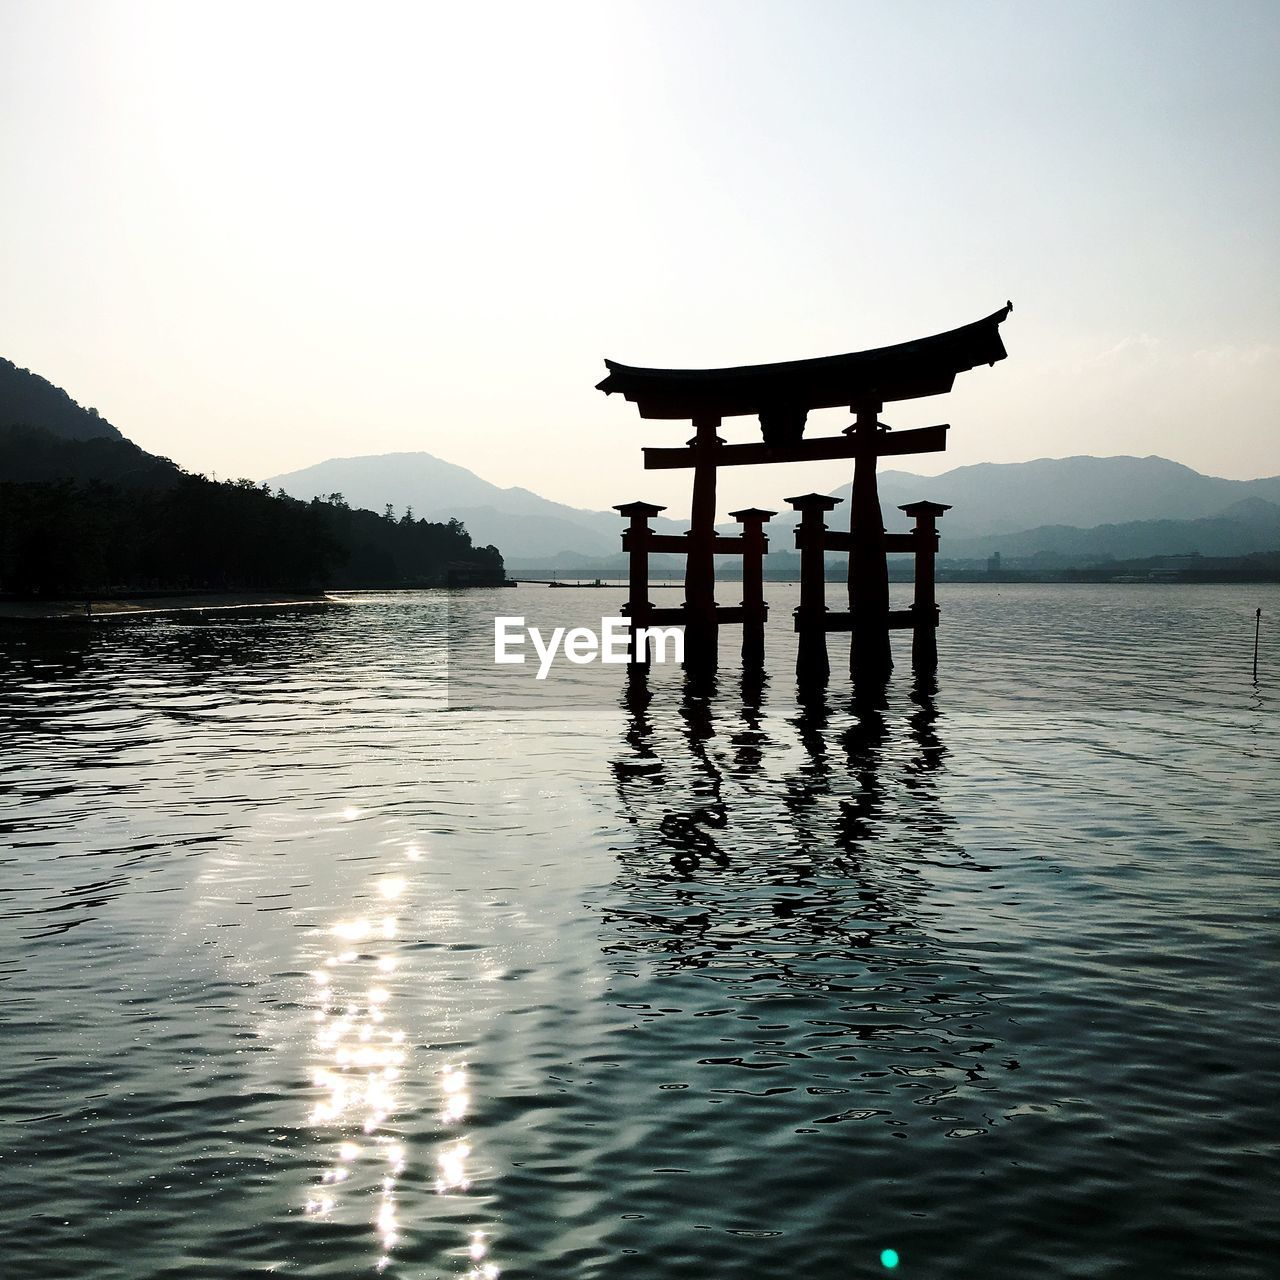 water, mountain, sky, religion, belief, tranquil scene, waterfront, tranquility, beauty in nature, nature, no people, spirituality, scenics - nature, silhouette, reflection, outdoors, lake, place of worship, non-urban scene, shrine